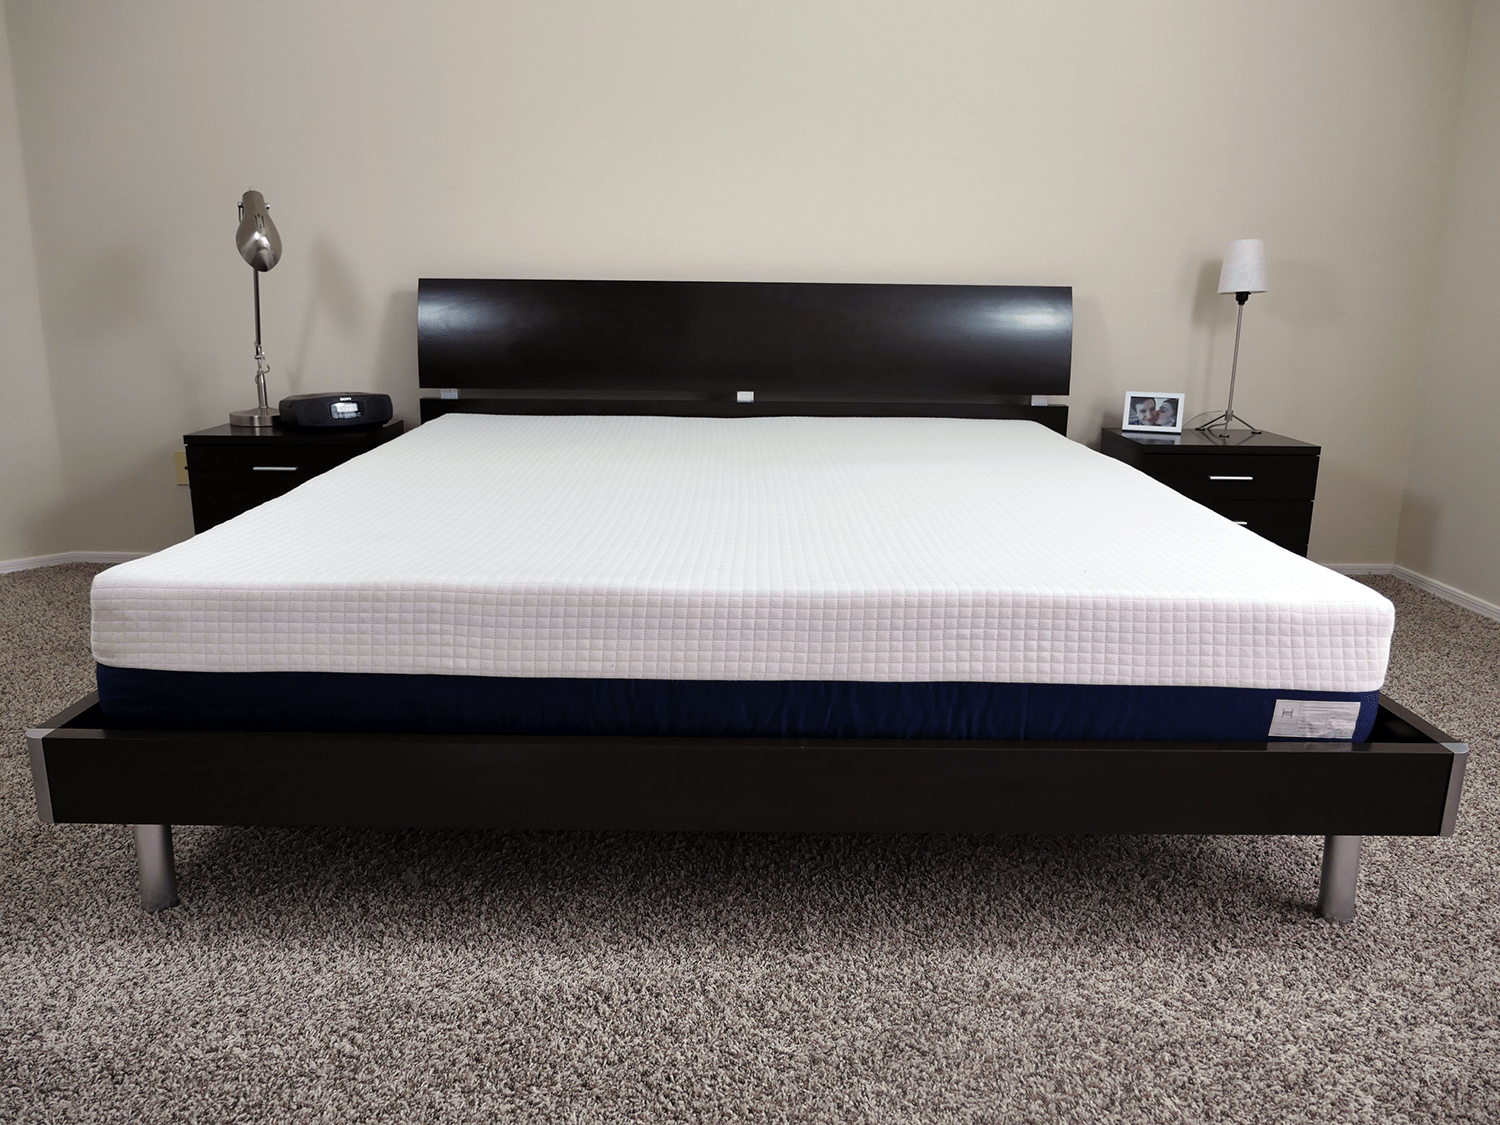 Helix mattress review sleepopolis for Brooklyn bedding vs tempurpedic